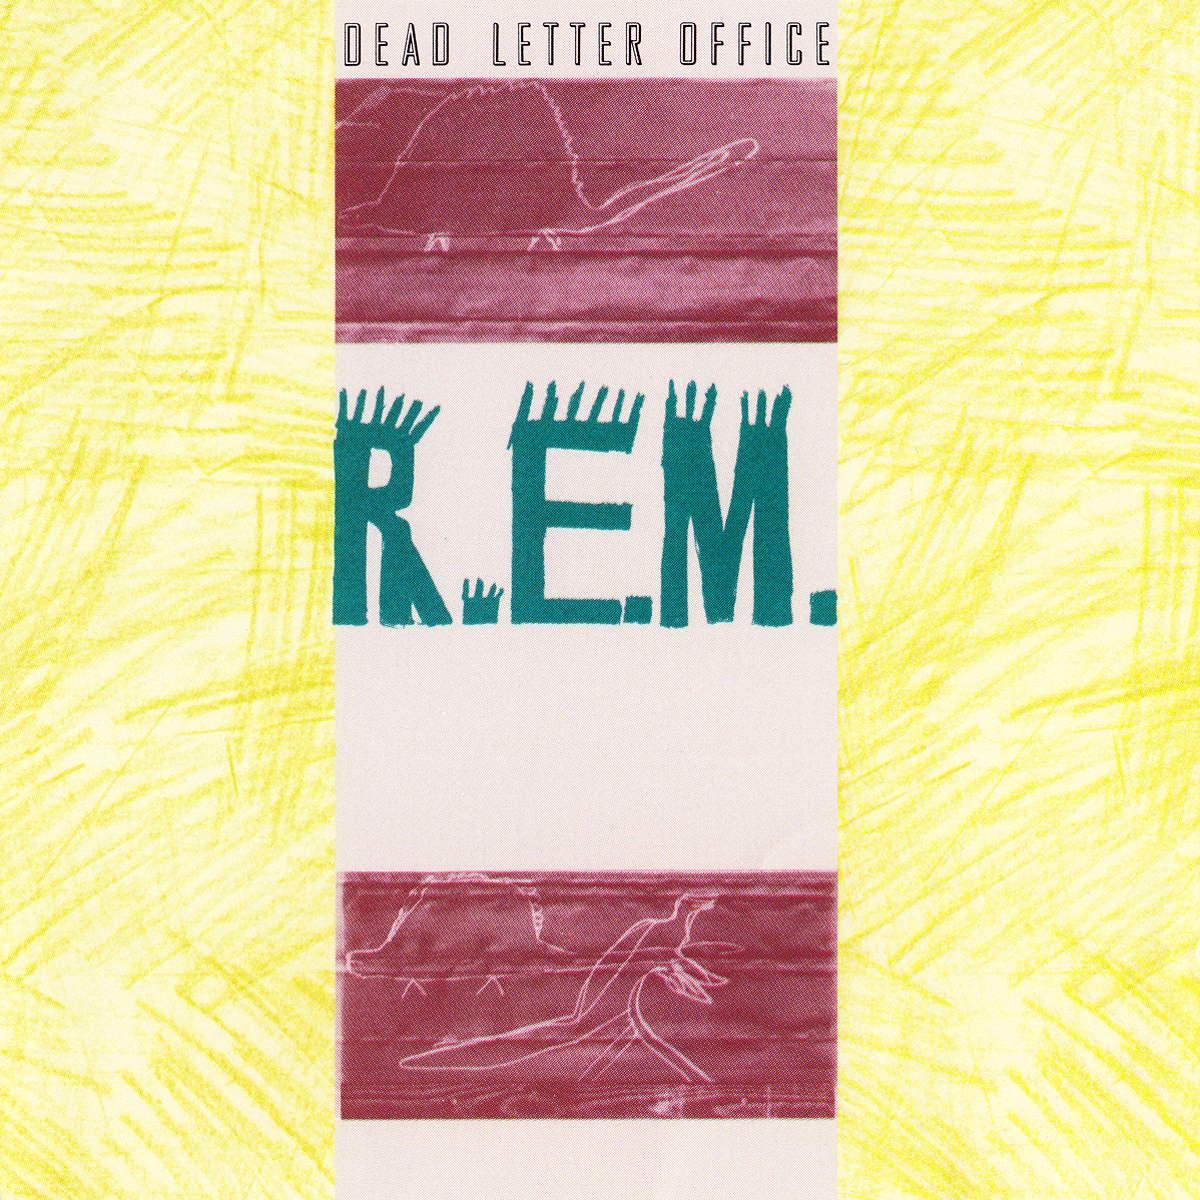 Dead Letter Office - R.E.M. — Listen and discover music at ...